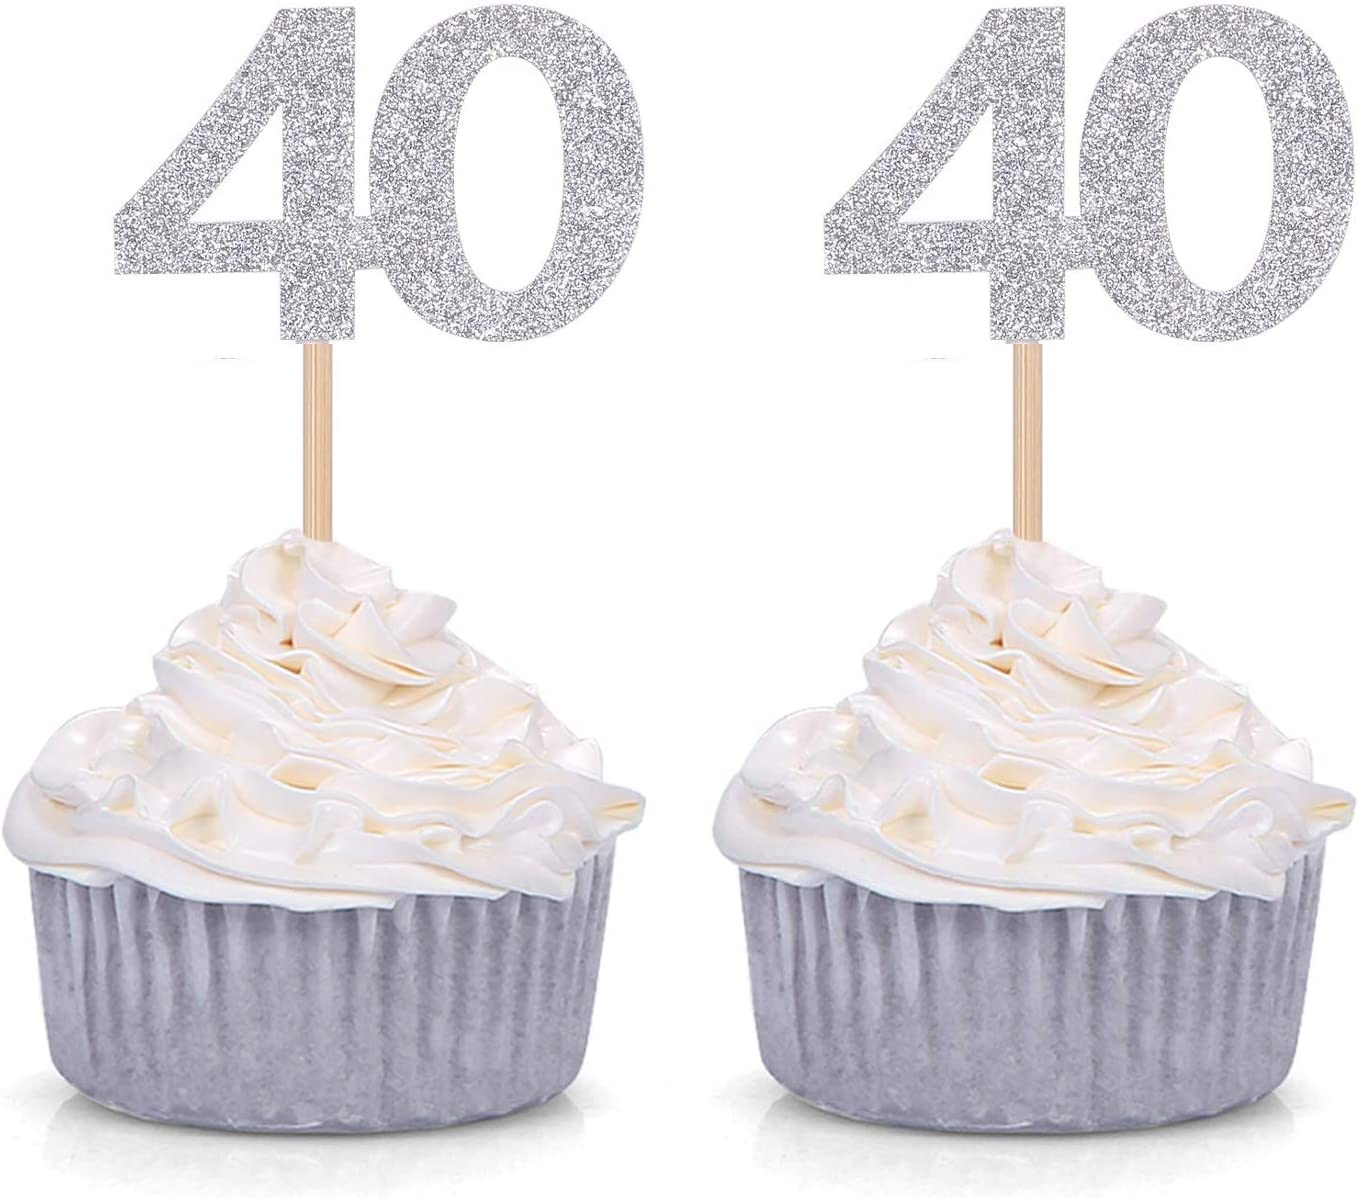 Set of 24 Silver Glitter Number 40 Cupcake Toppers 40th Birthday Celebrating Decors Giuffi